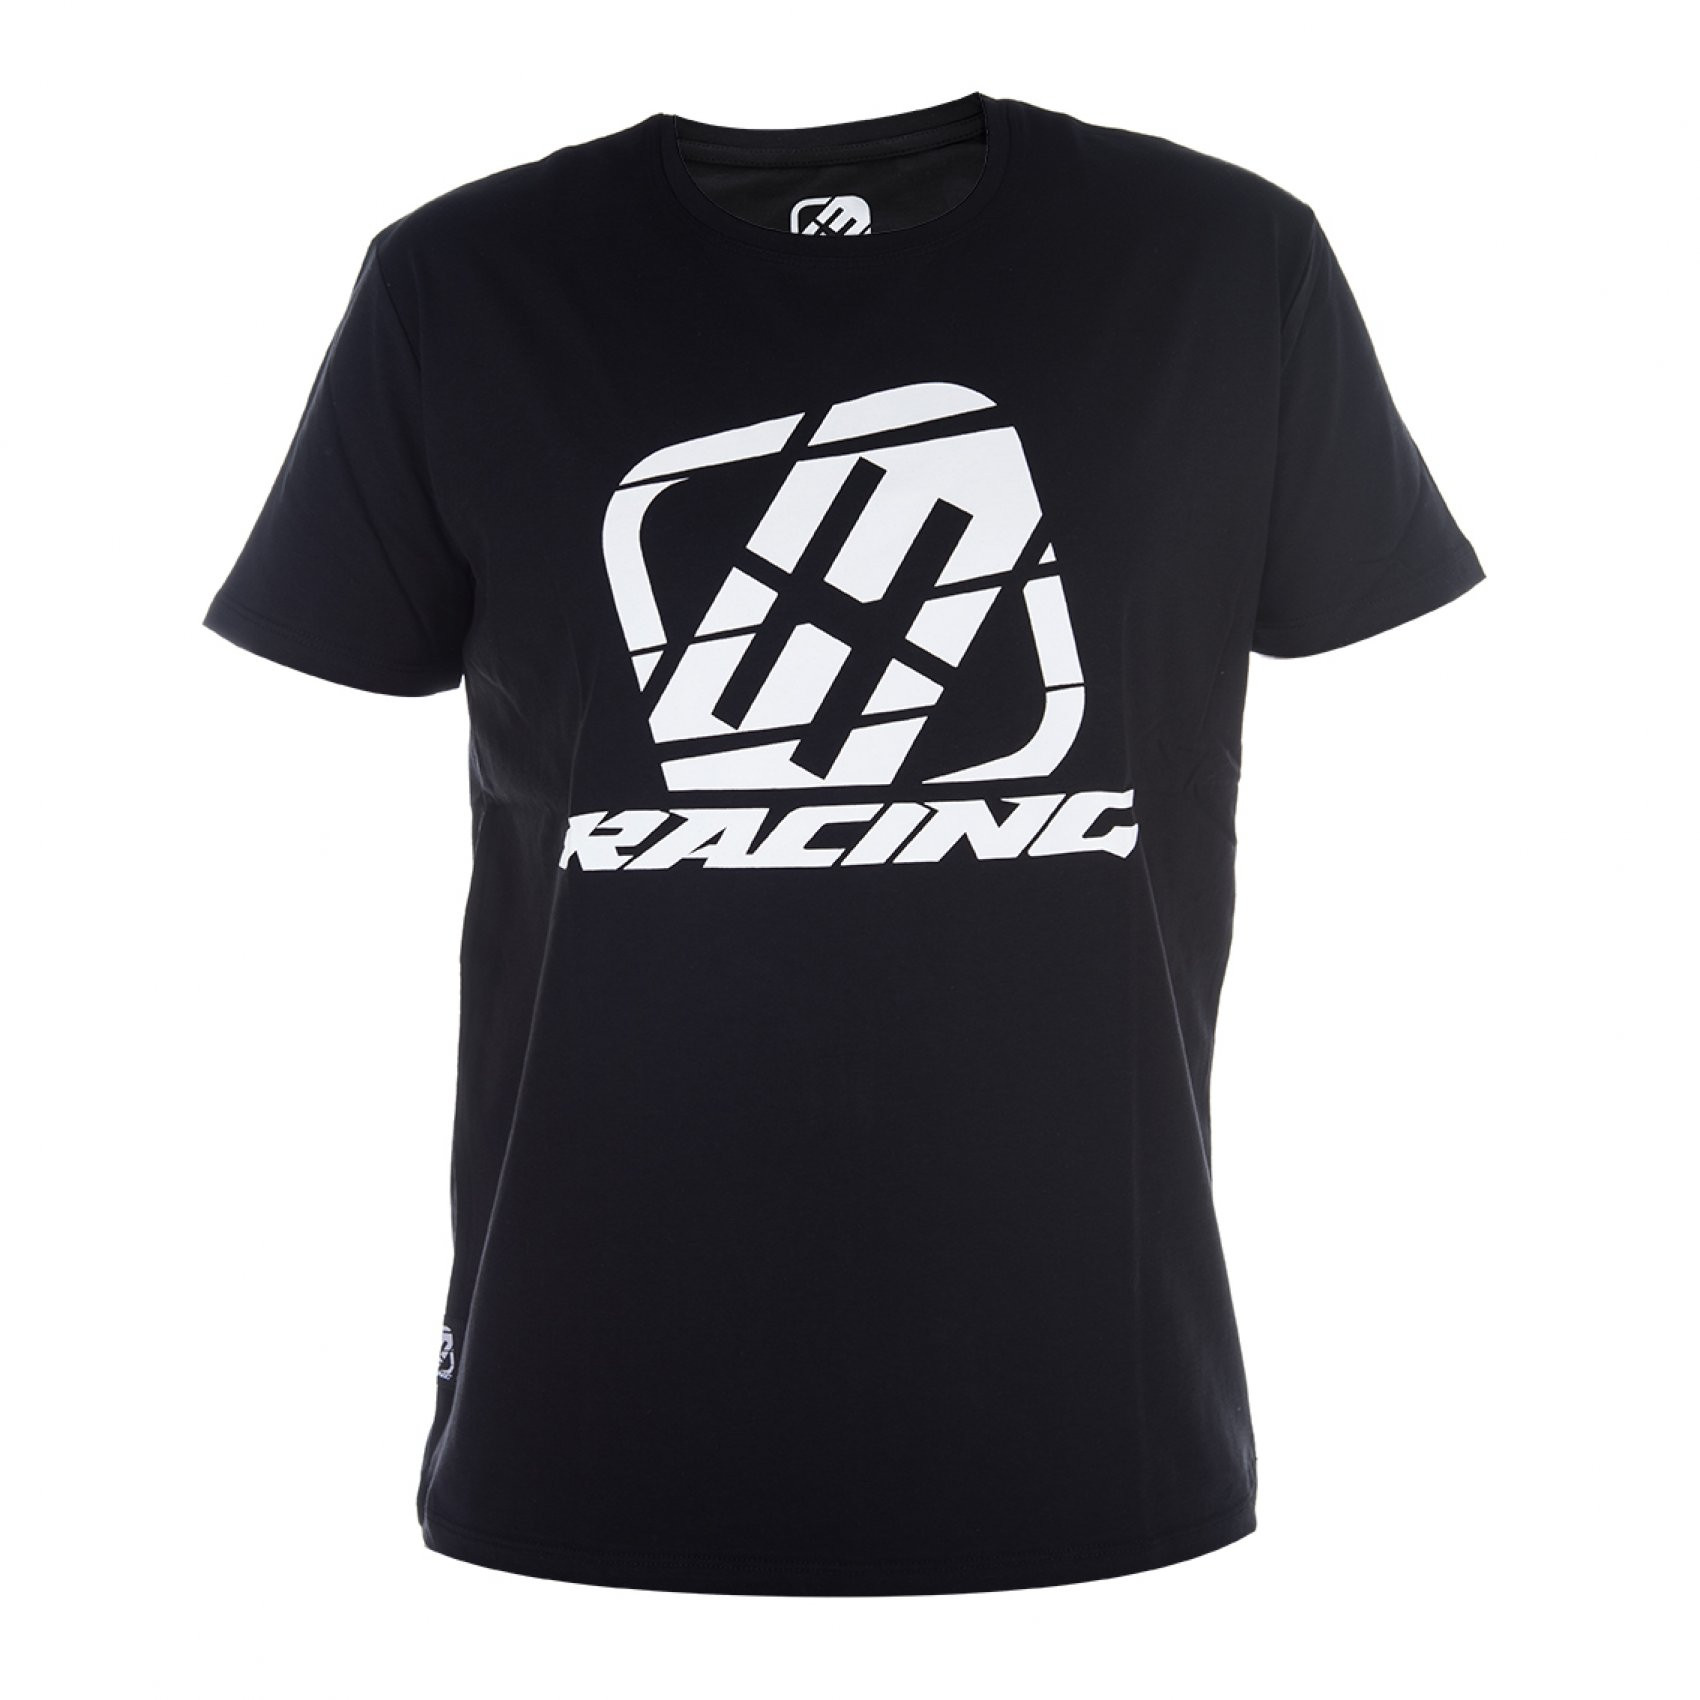 T-shirt homme racing (photo)